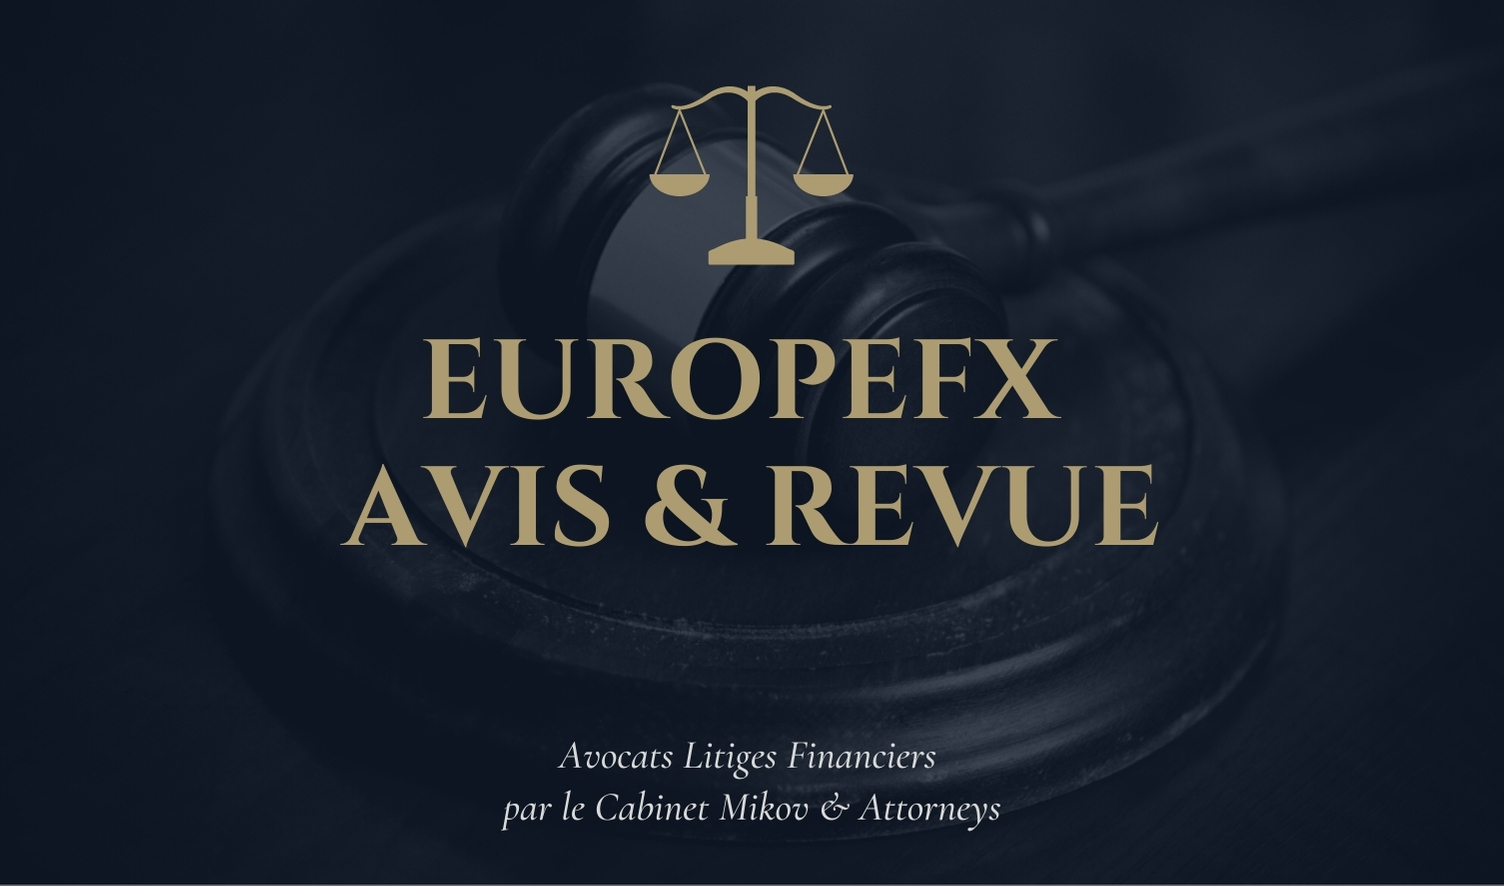 EuropeFX avis mikov attorneys avocats litiges financiers